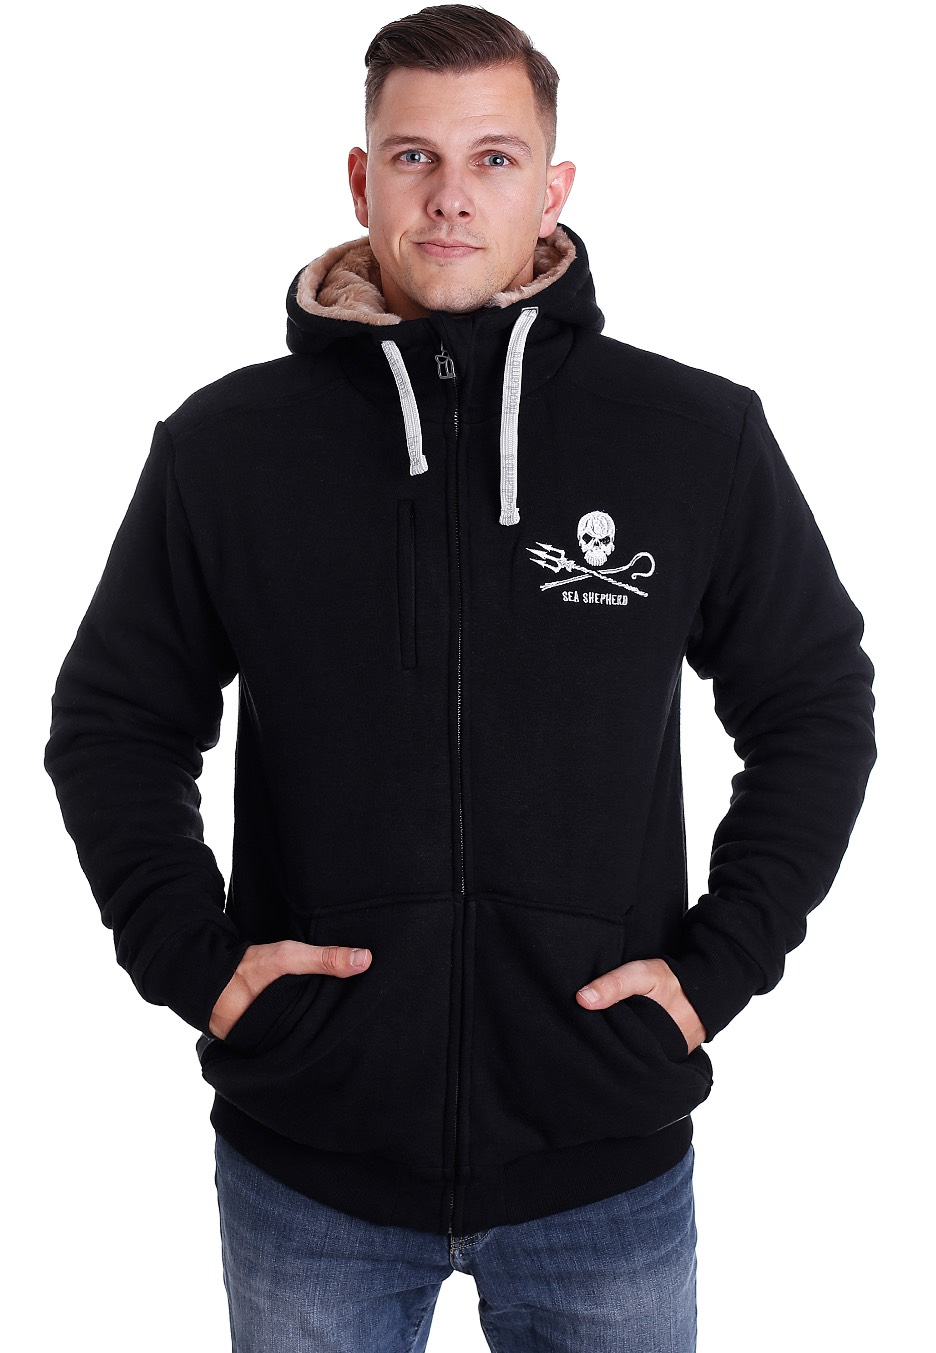 hoodlamb x sea shepherd furry jacke streetwear shop. Black Bedroom Furniture Sets. Home Design Ideas